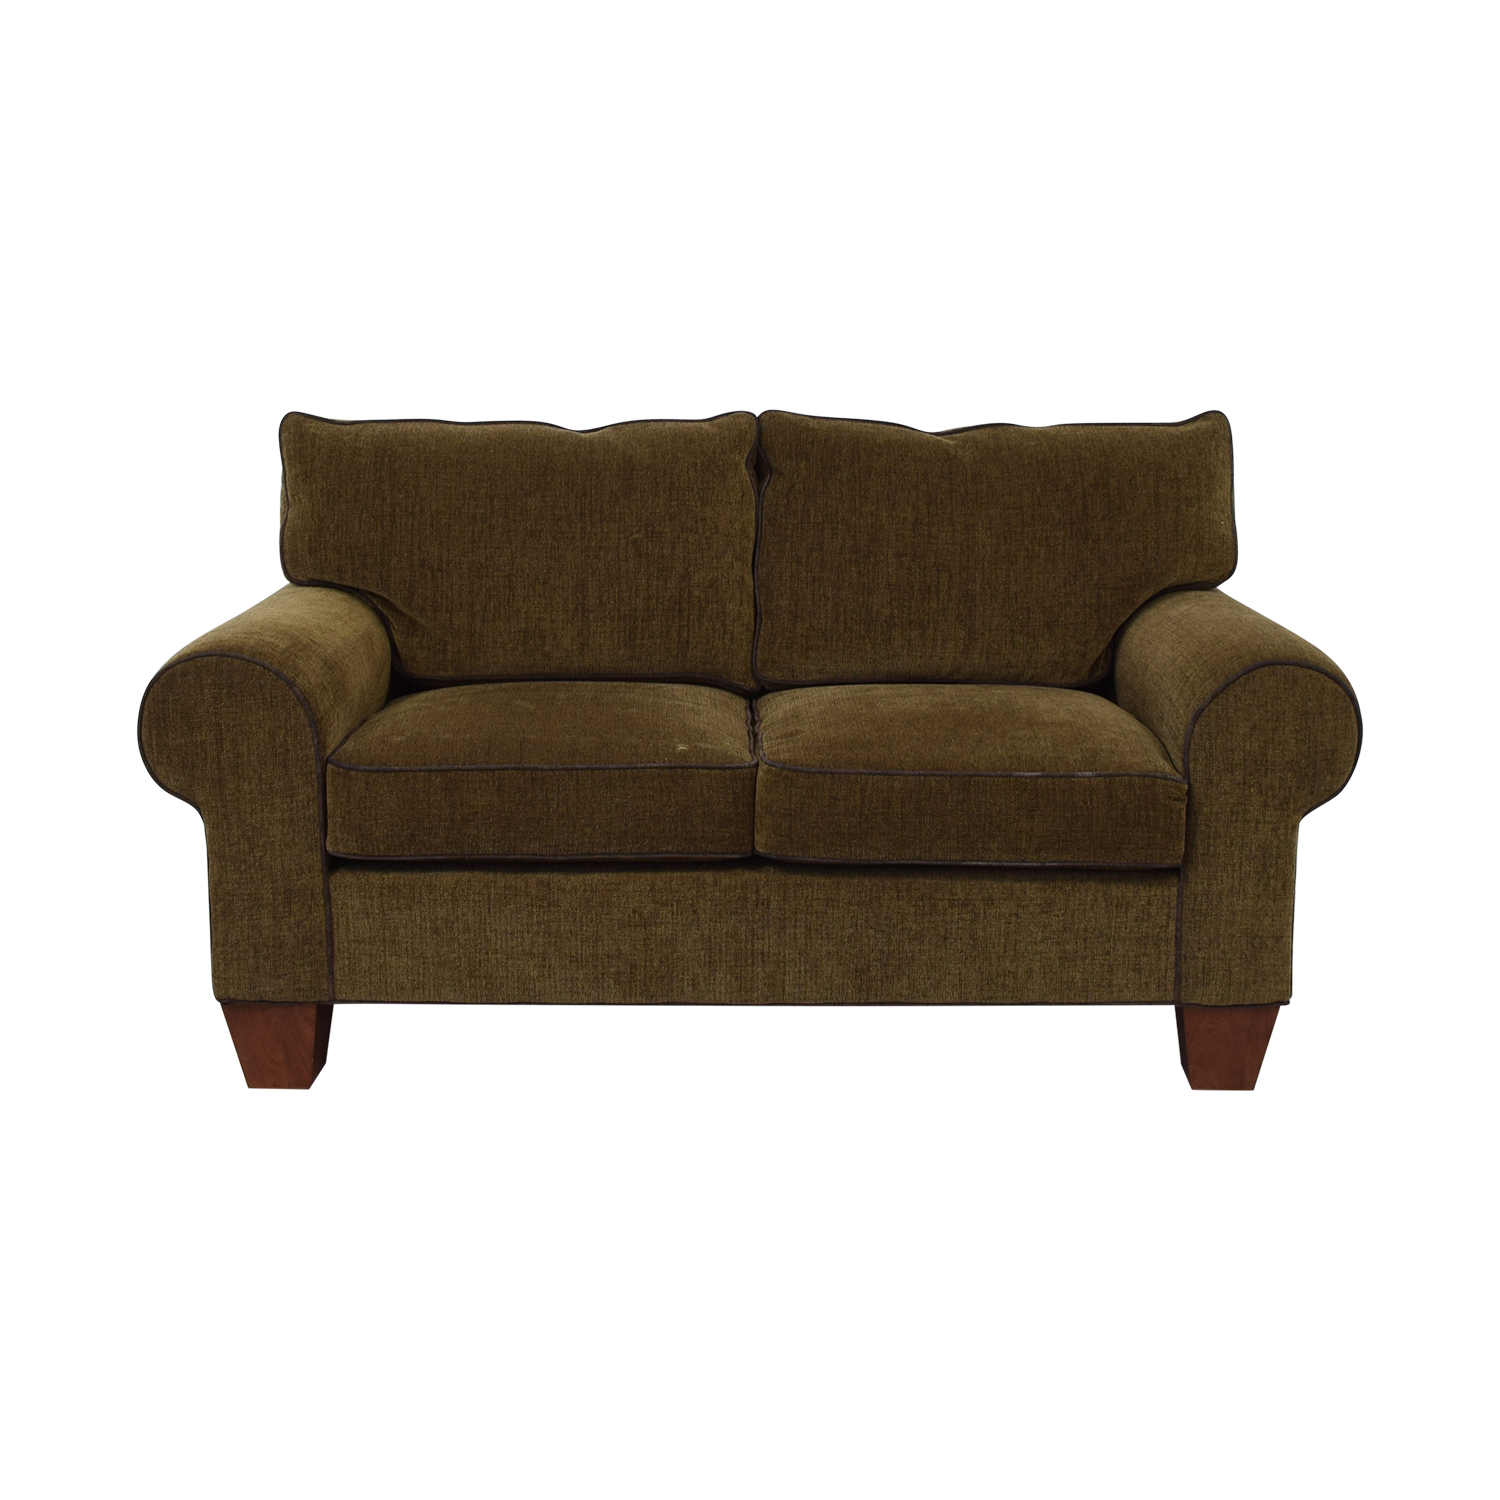 Norwalk Furniture Norwalk Furniture Loveseat second hand